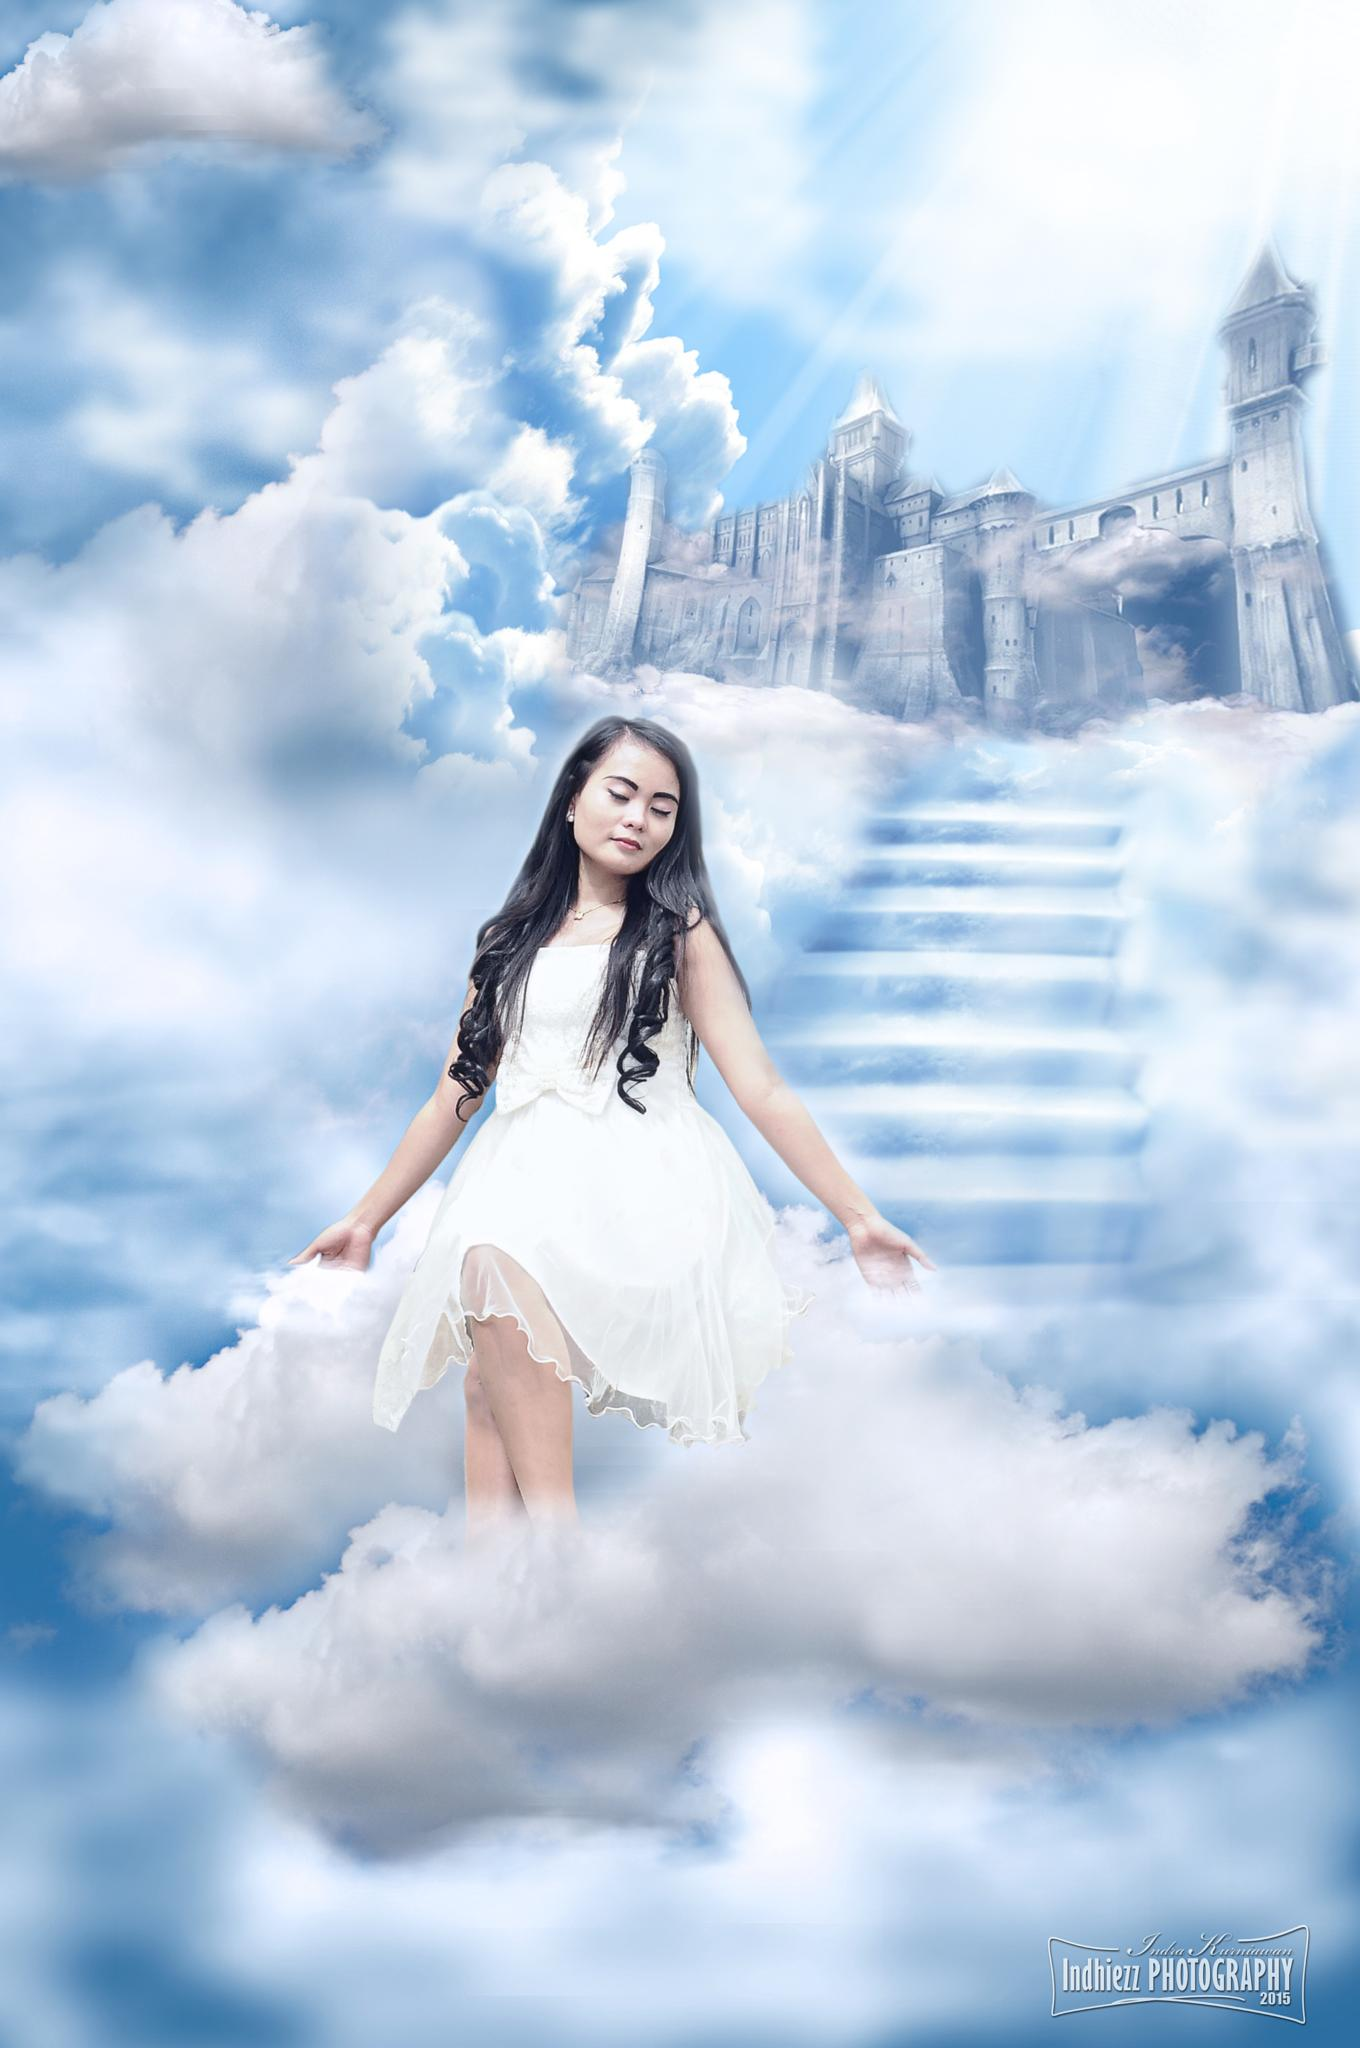 I'm Feel free in Heaven by Indhiezz Photography